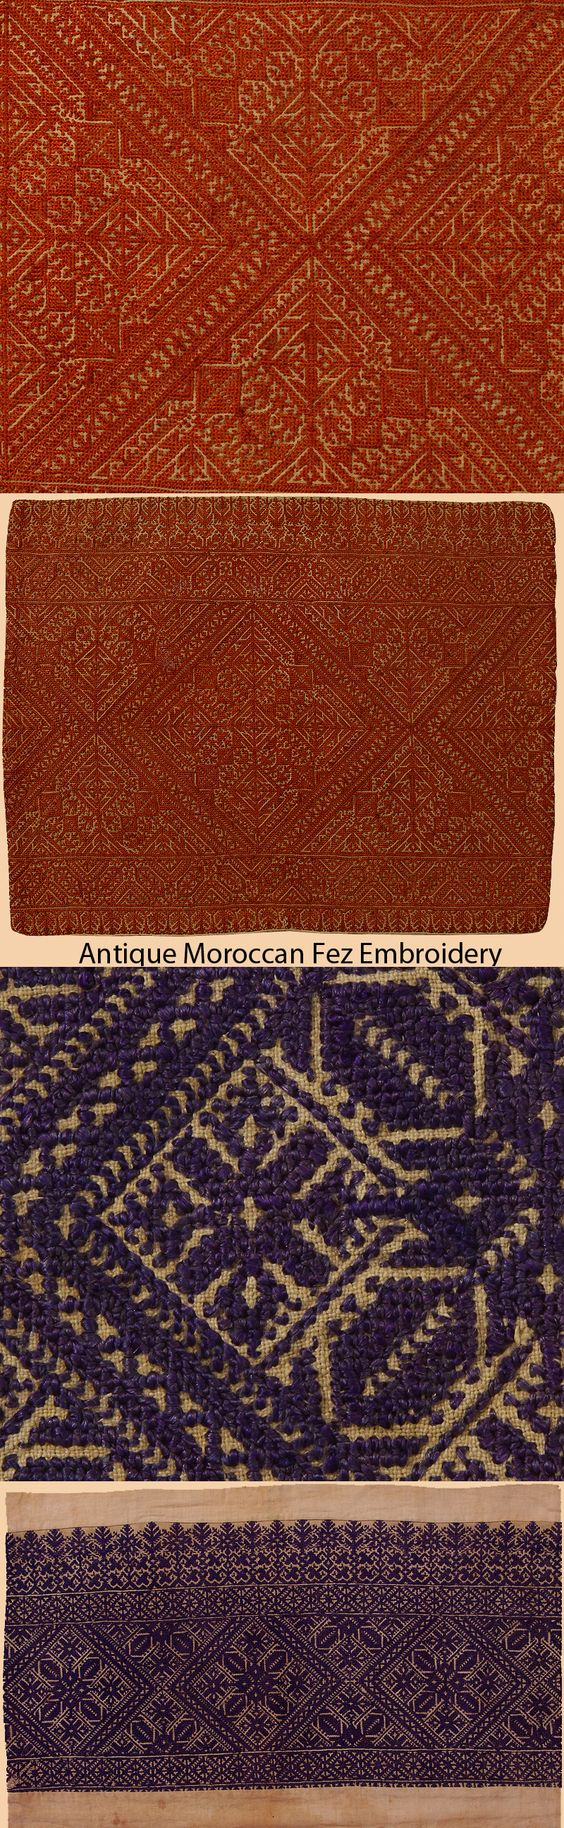 embroidery morocco.jpg